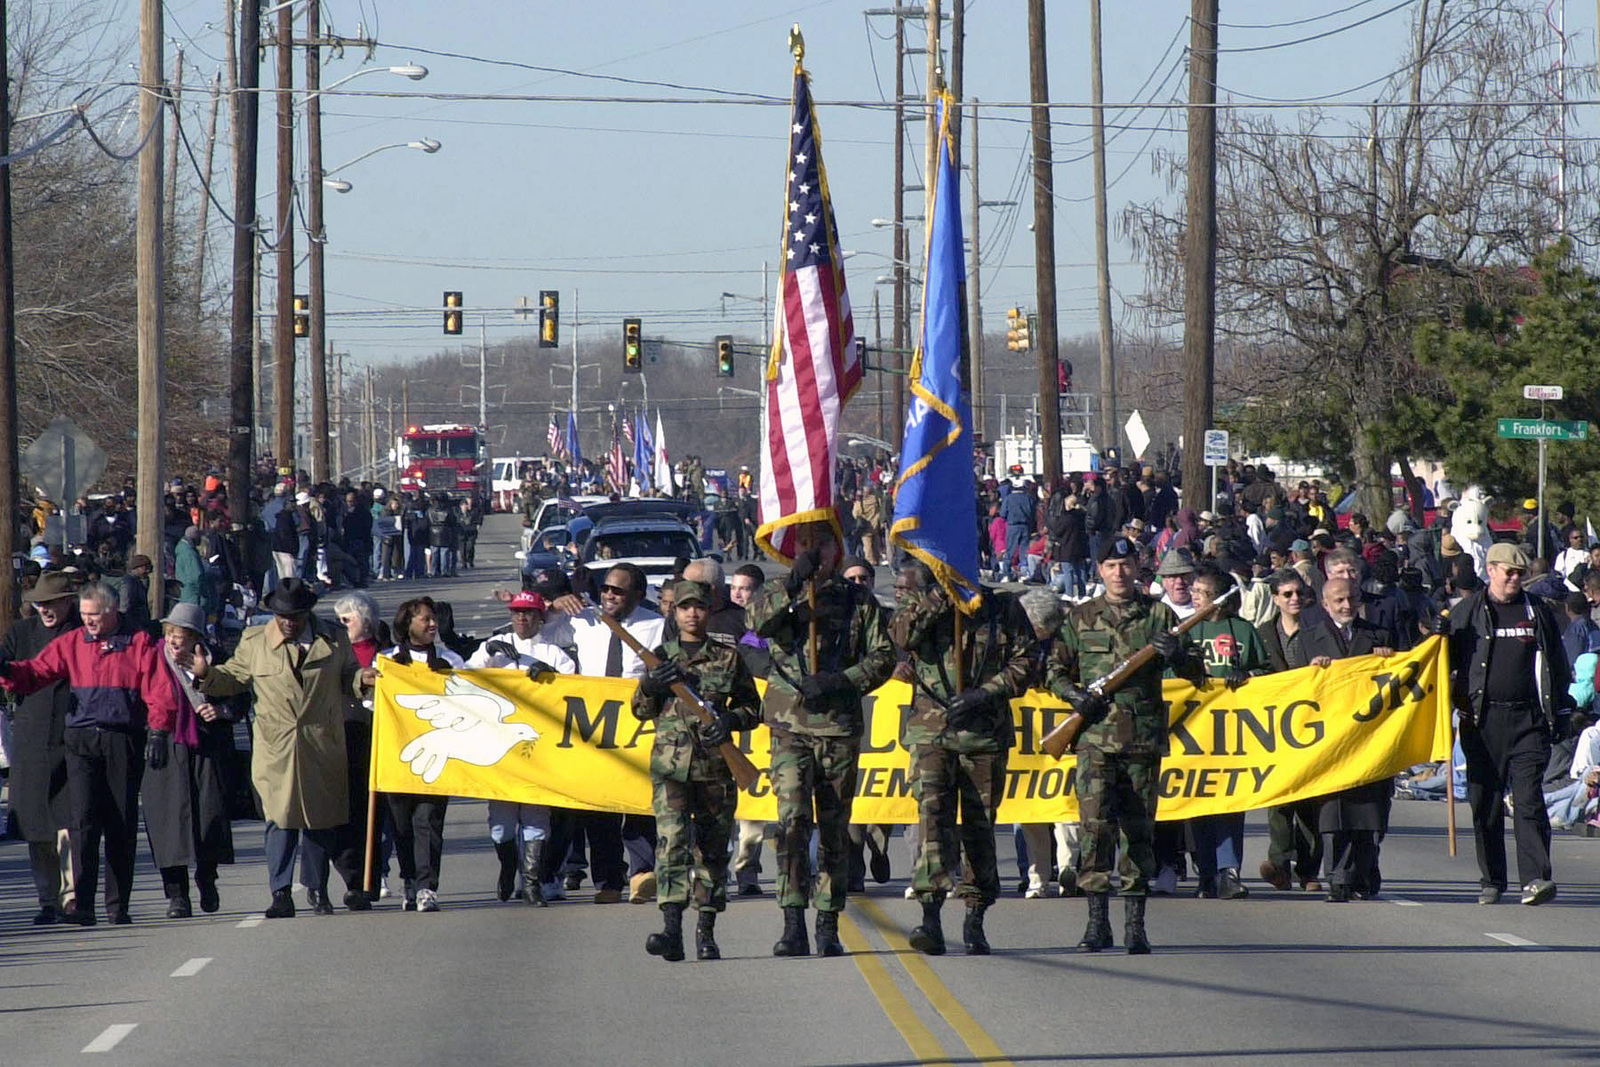 Members of the US Air Force (USAF) 138th Fighter Wings Honor Guard, lead the Martin Luther King Jr., Day Celebration Parade at Tulsa, Oklahoma (OK)